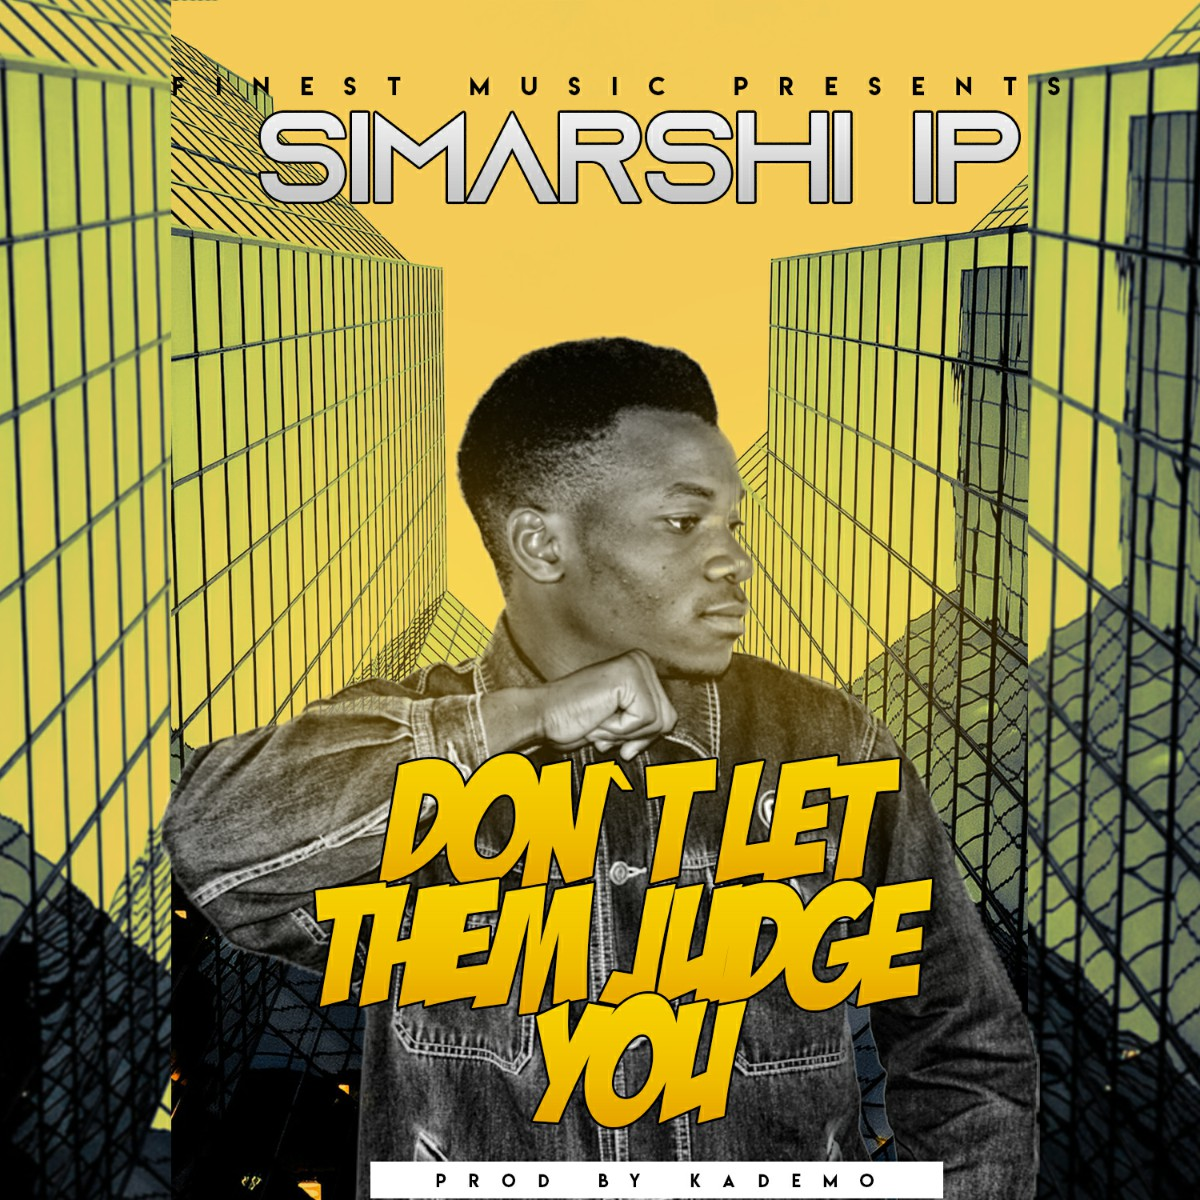 Simarshi IP - Don't Let Them Judge You